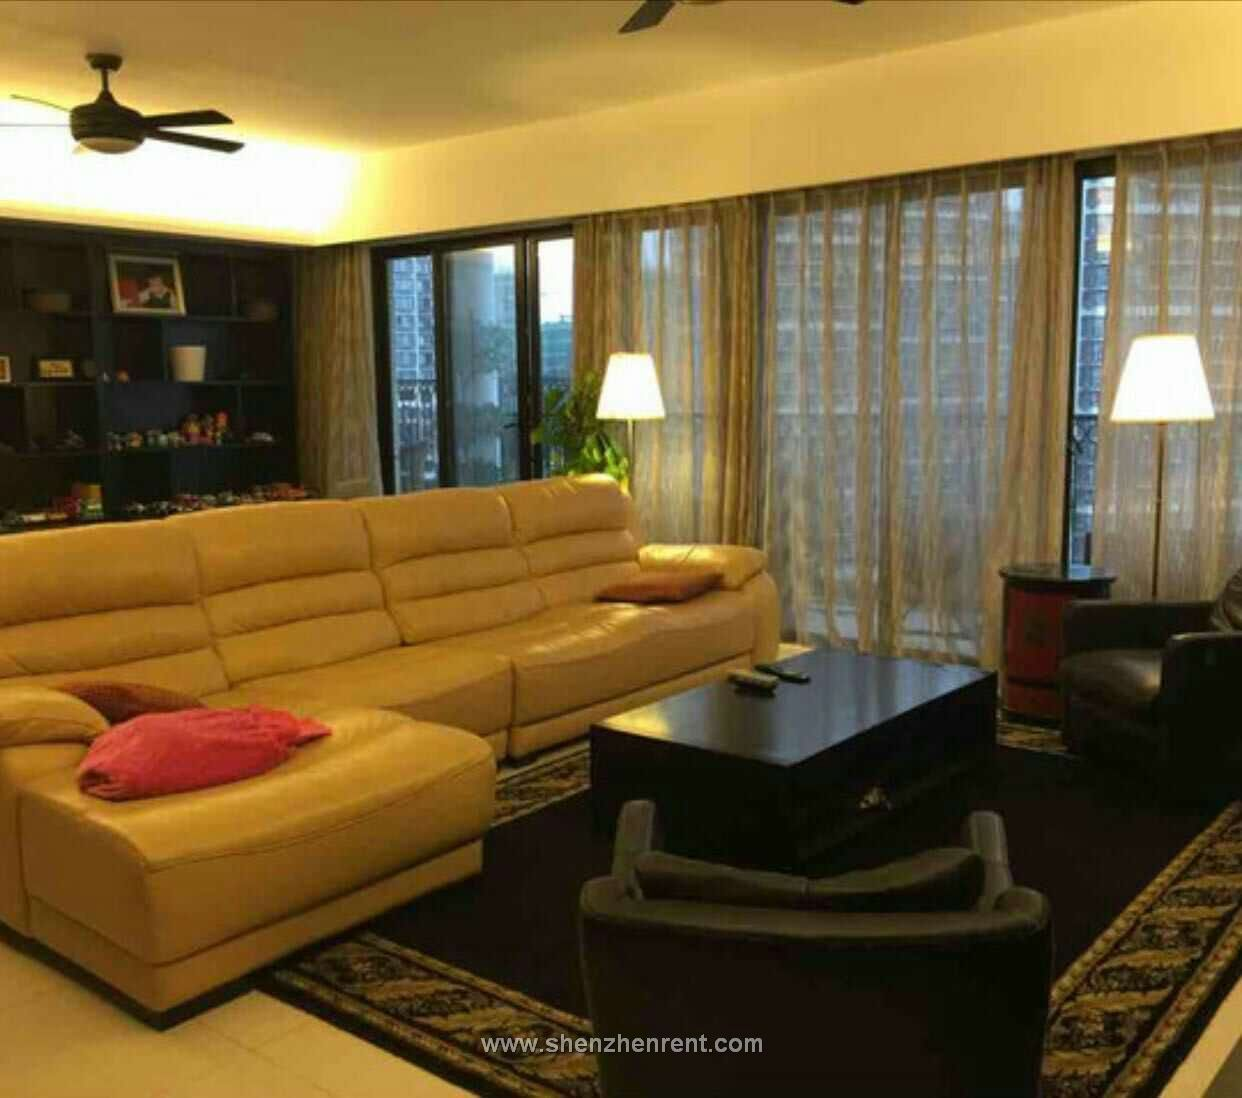 Nice 3 Bedroom House For Rent: Shenzhen Rent,shekou,Expat Relocation,Real